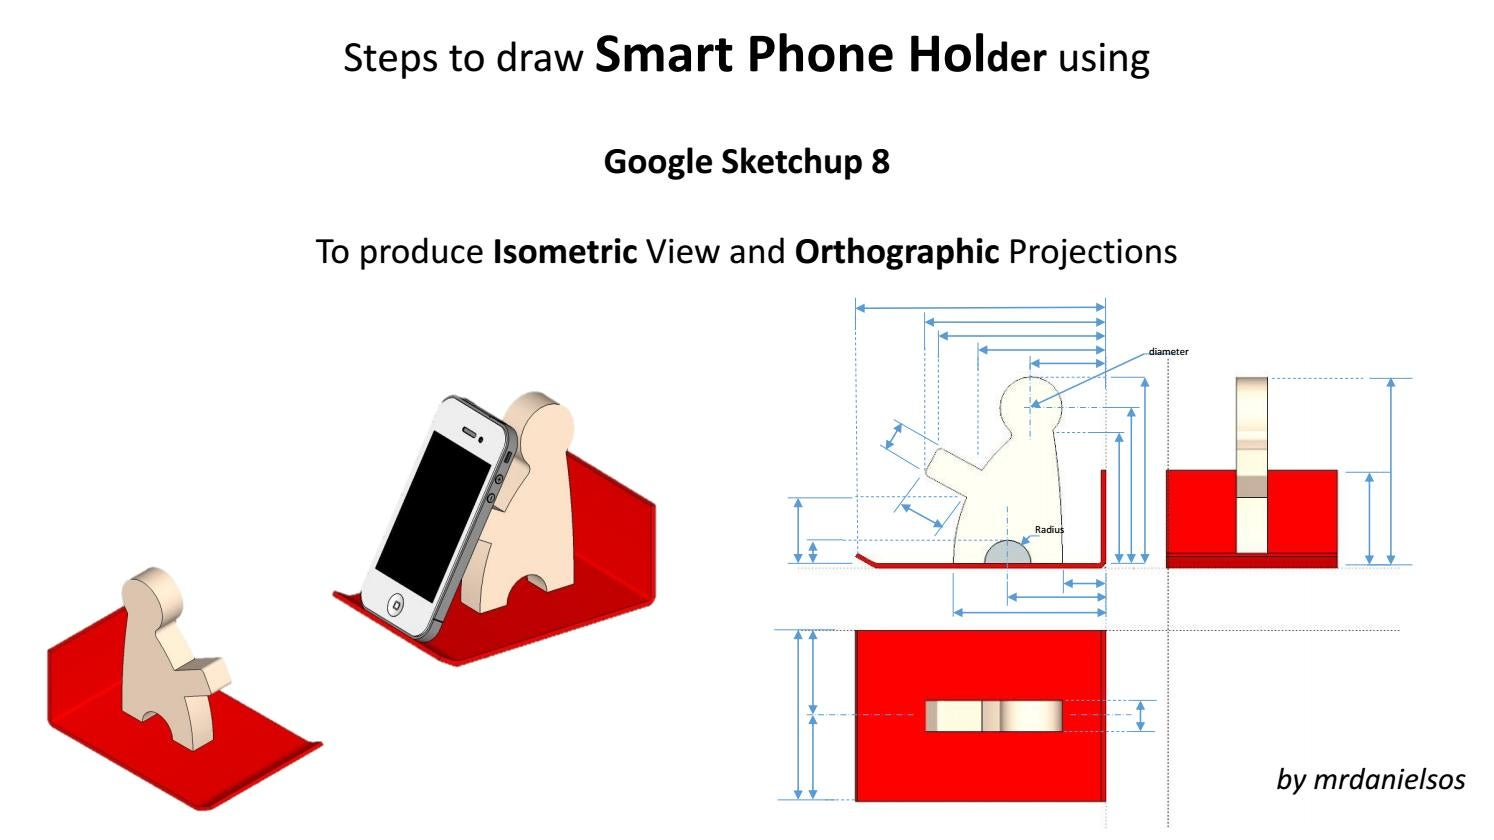 Step by step guide to draw a phone holder using Google SketchUp 8